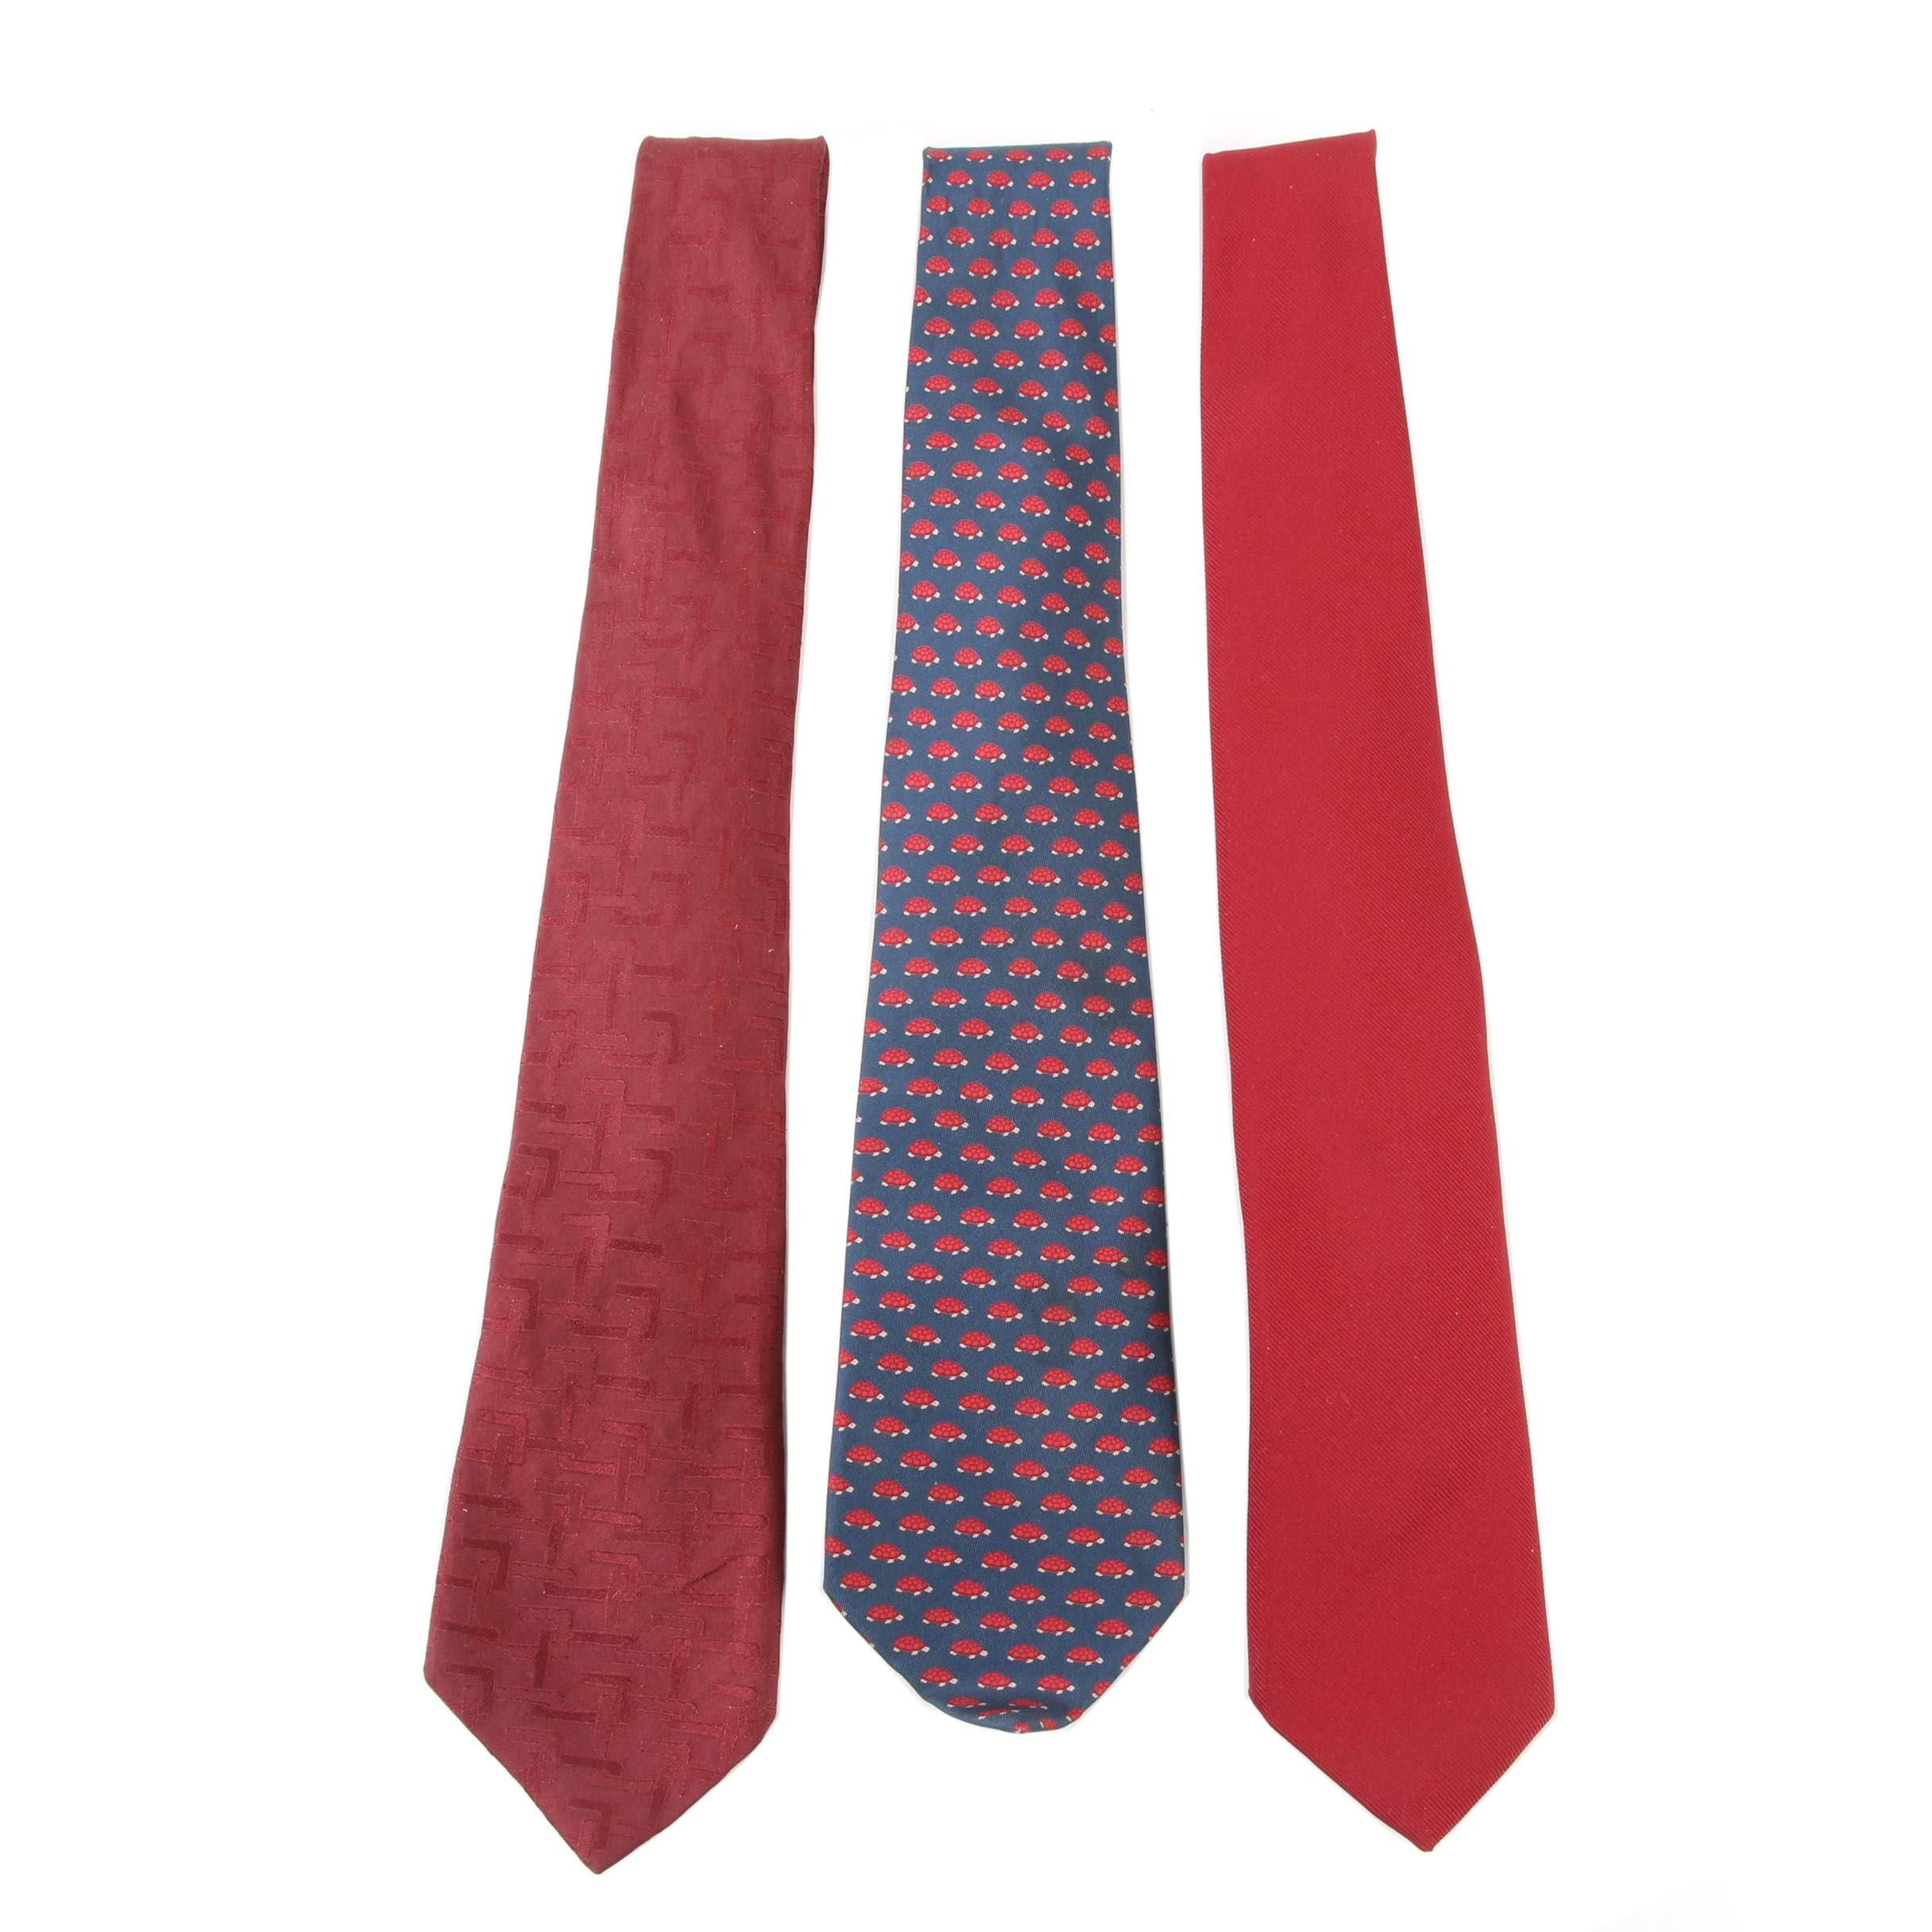 Men's Gucci Silk and Givenchy Silk Blend Neckties, Late 20th Century